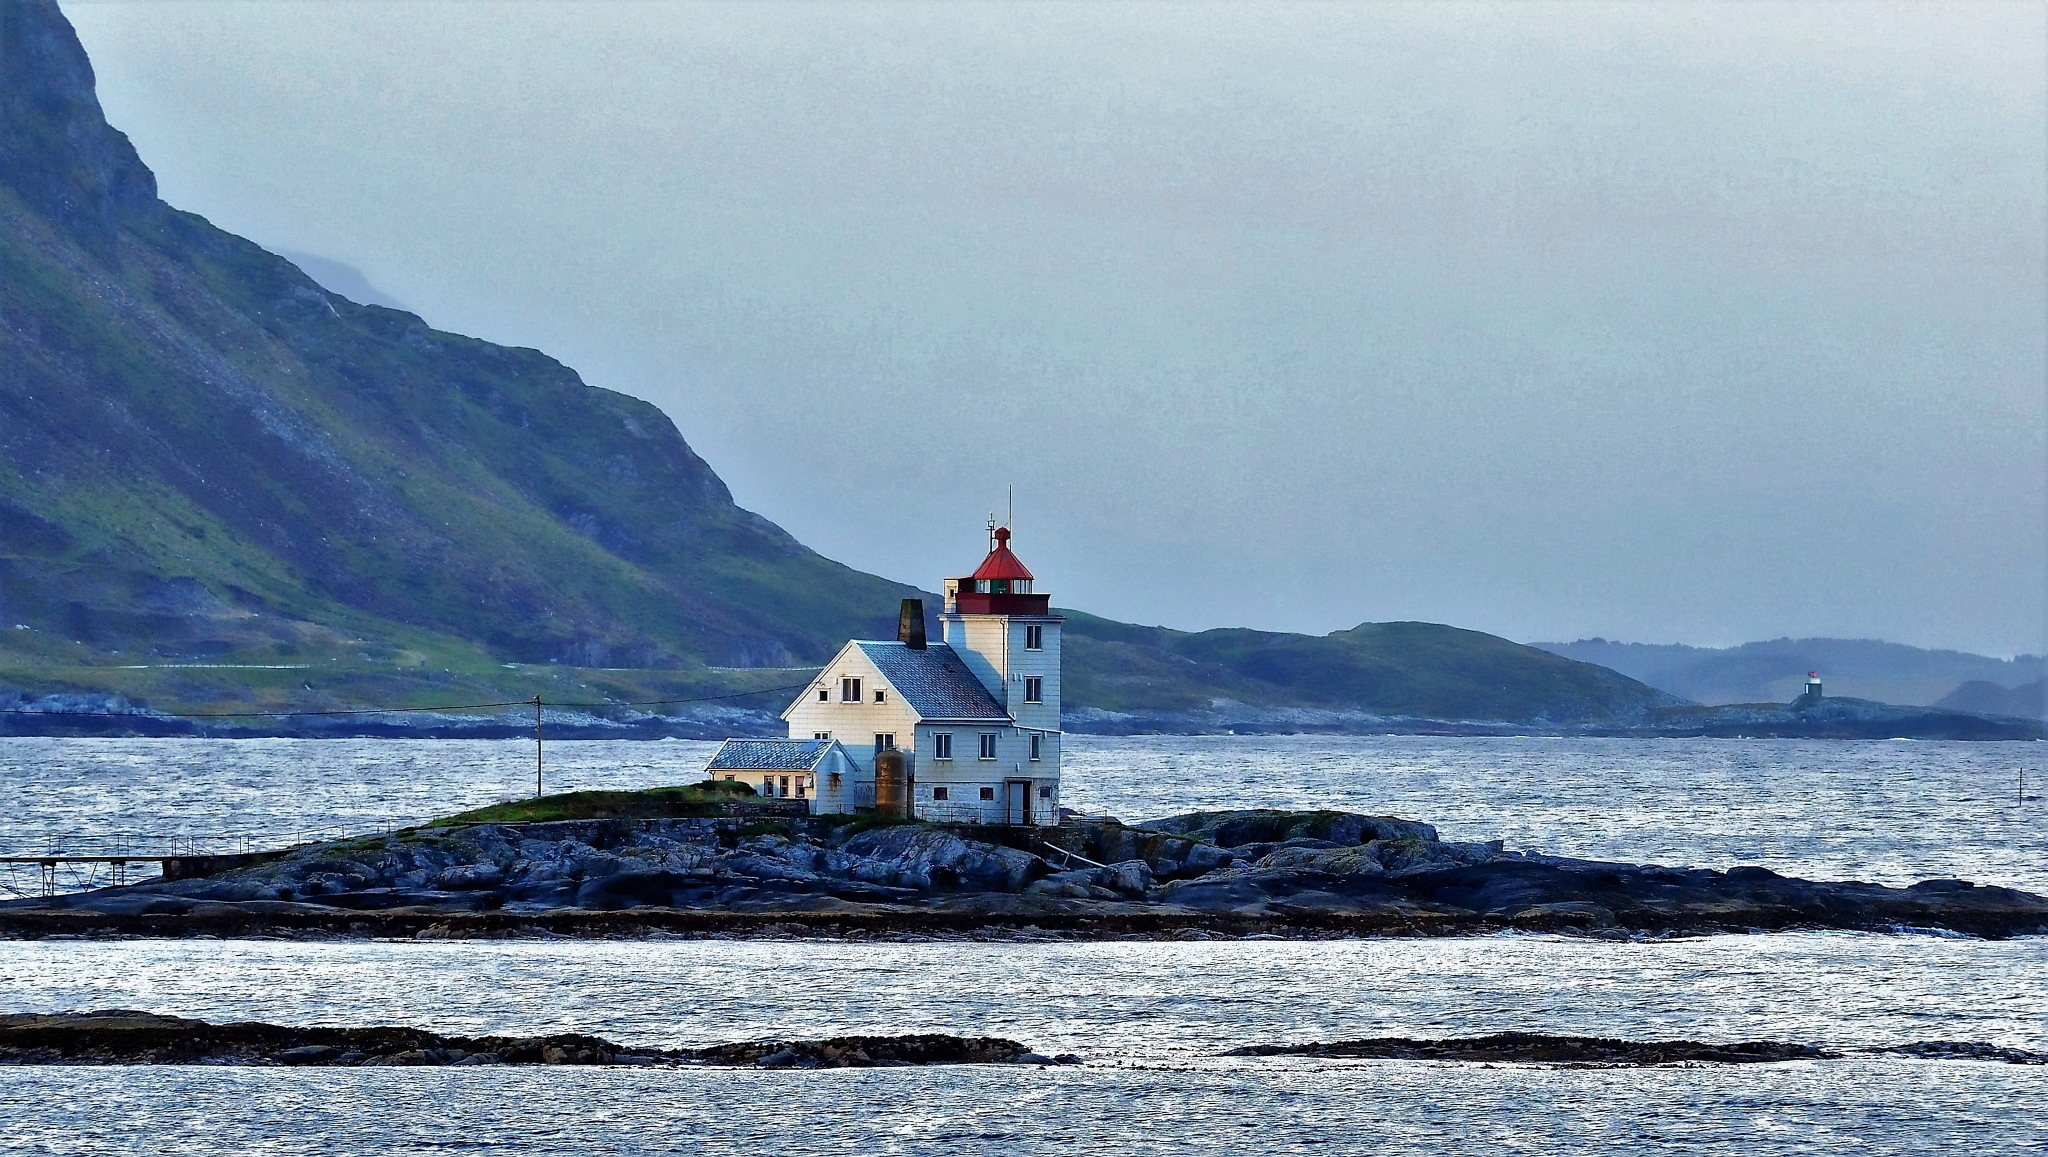 Lighthouse on coastal Norway by william.l.bosley